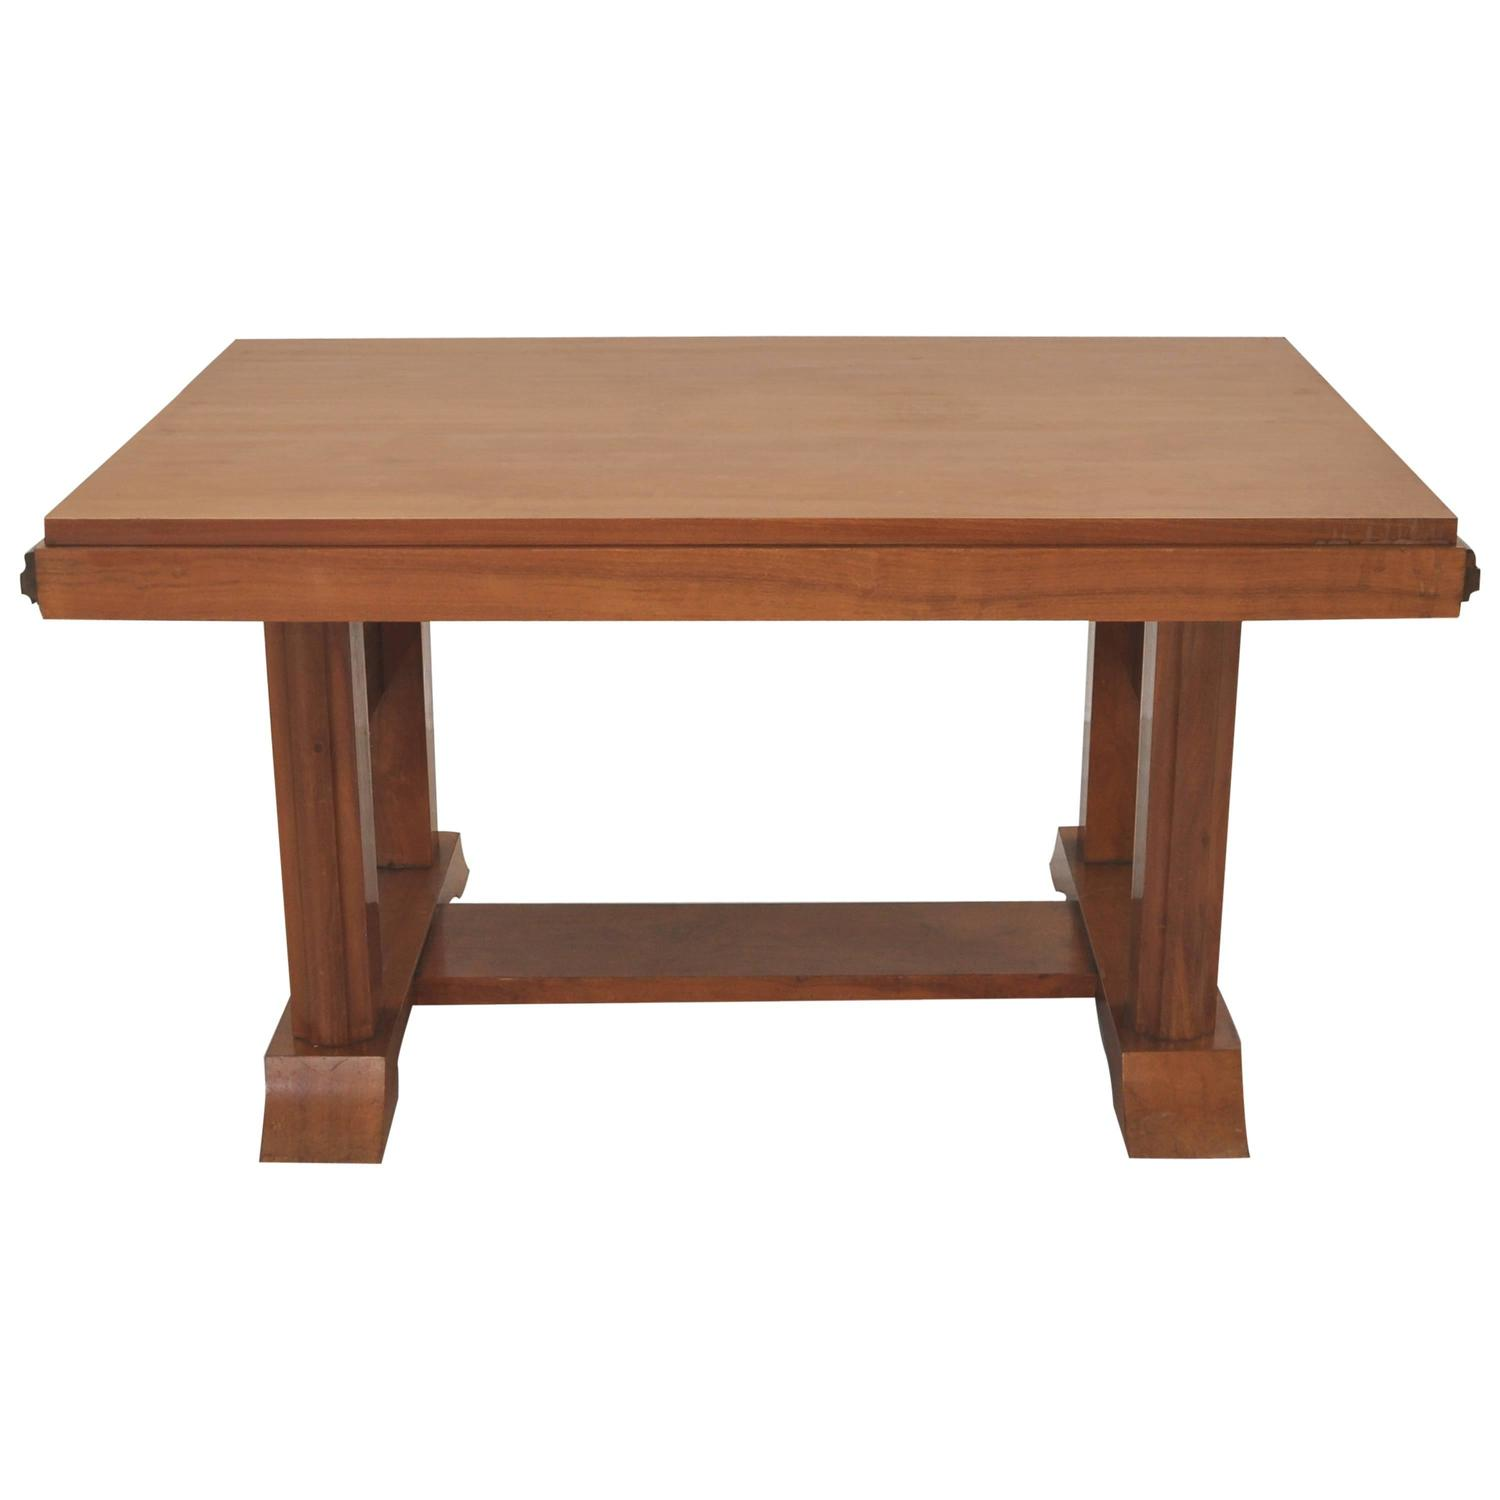 Extendable art deco dining table made of walnut for sale for Artistic dining room tables